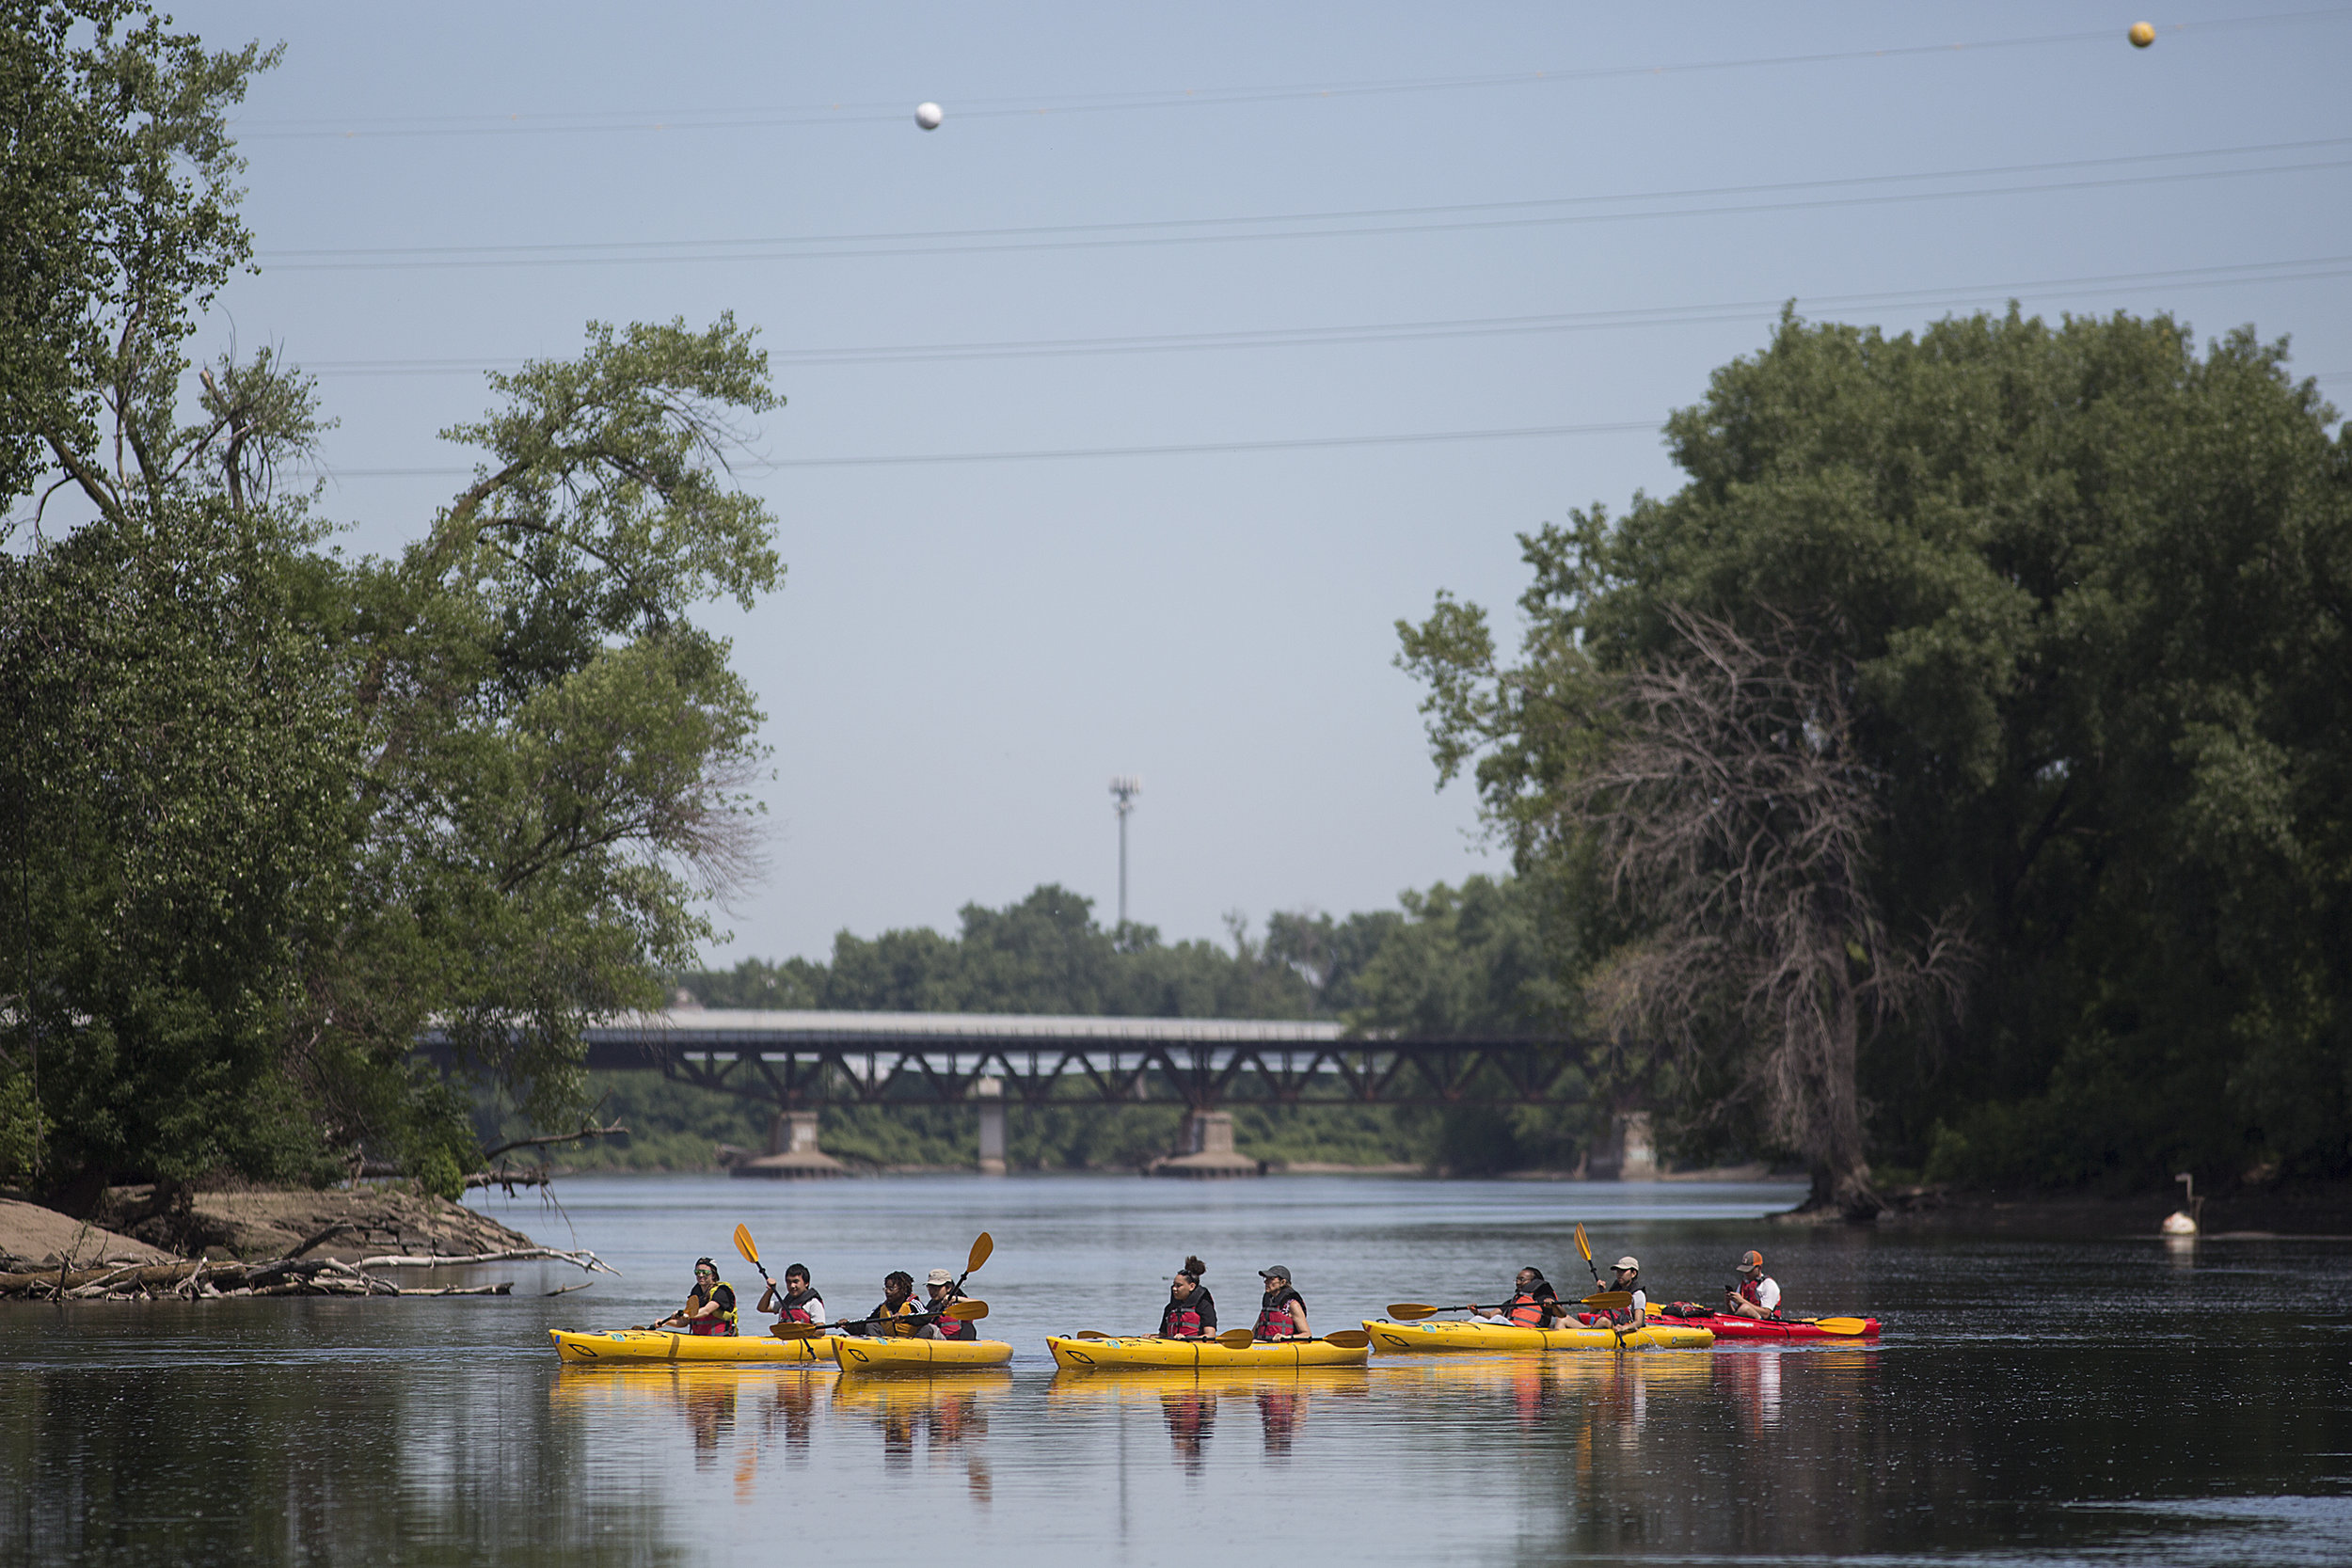 North News  summer interns paddled from North Mississippi Regional Park to Boom Island Park on the Mississippi River on June 26. They were guided by Paddle Bridge and National Park Service Fellows.  Photo by David Pierini